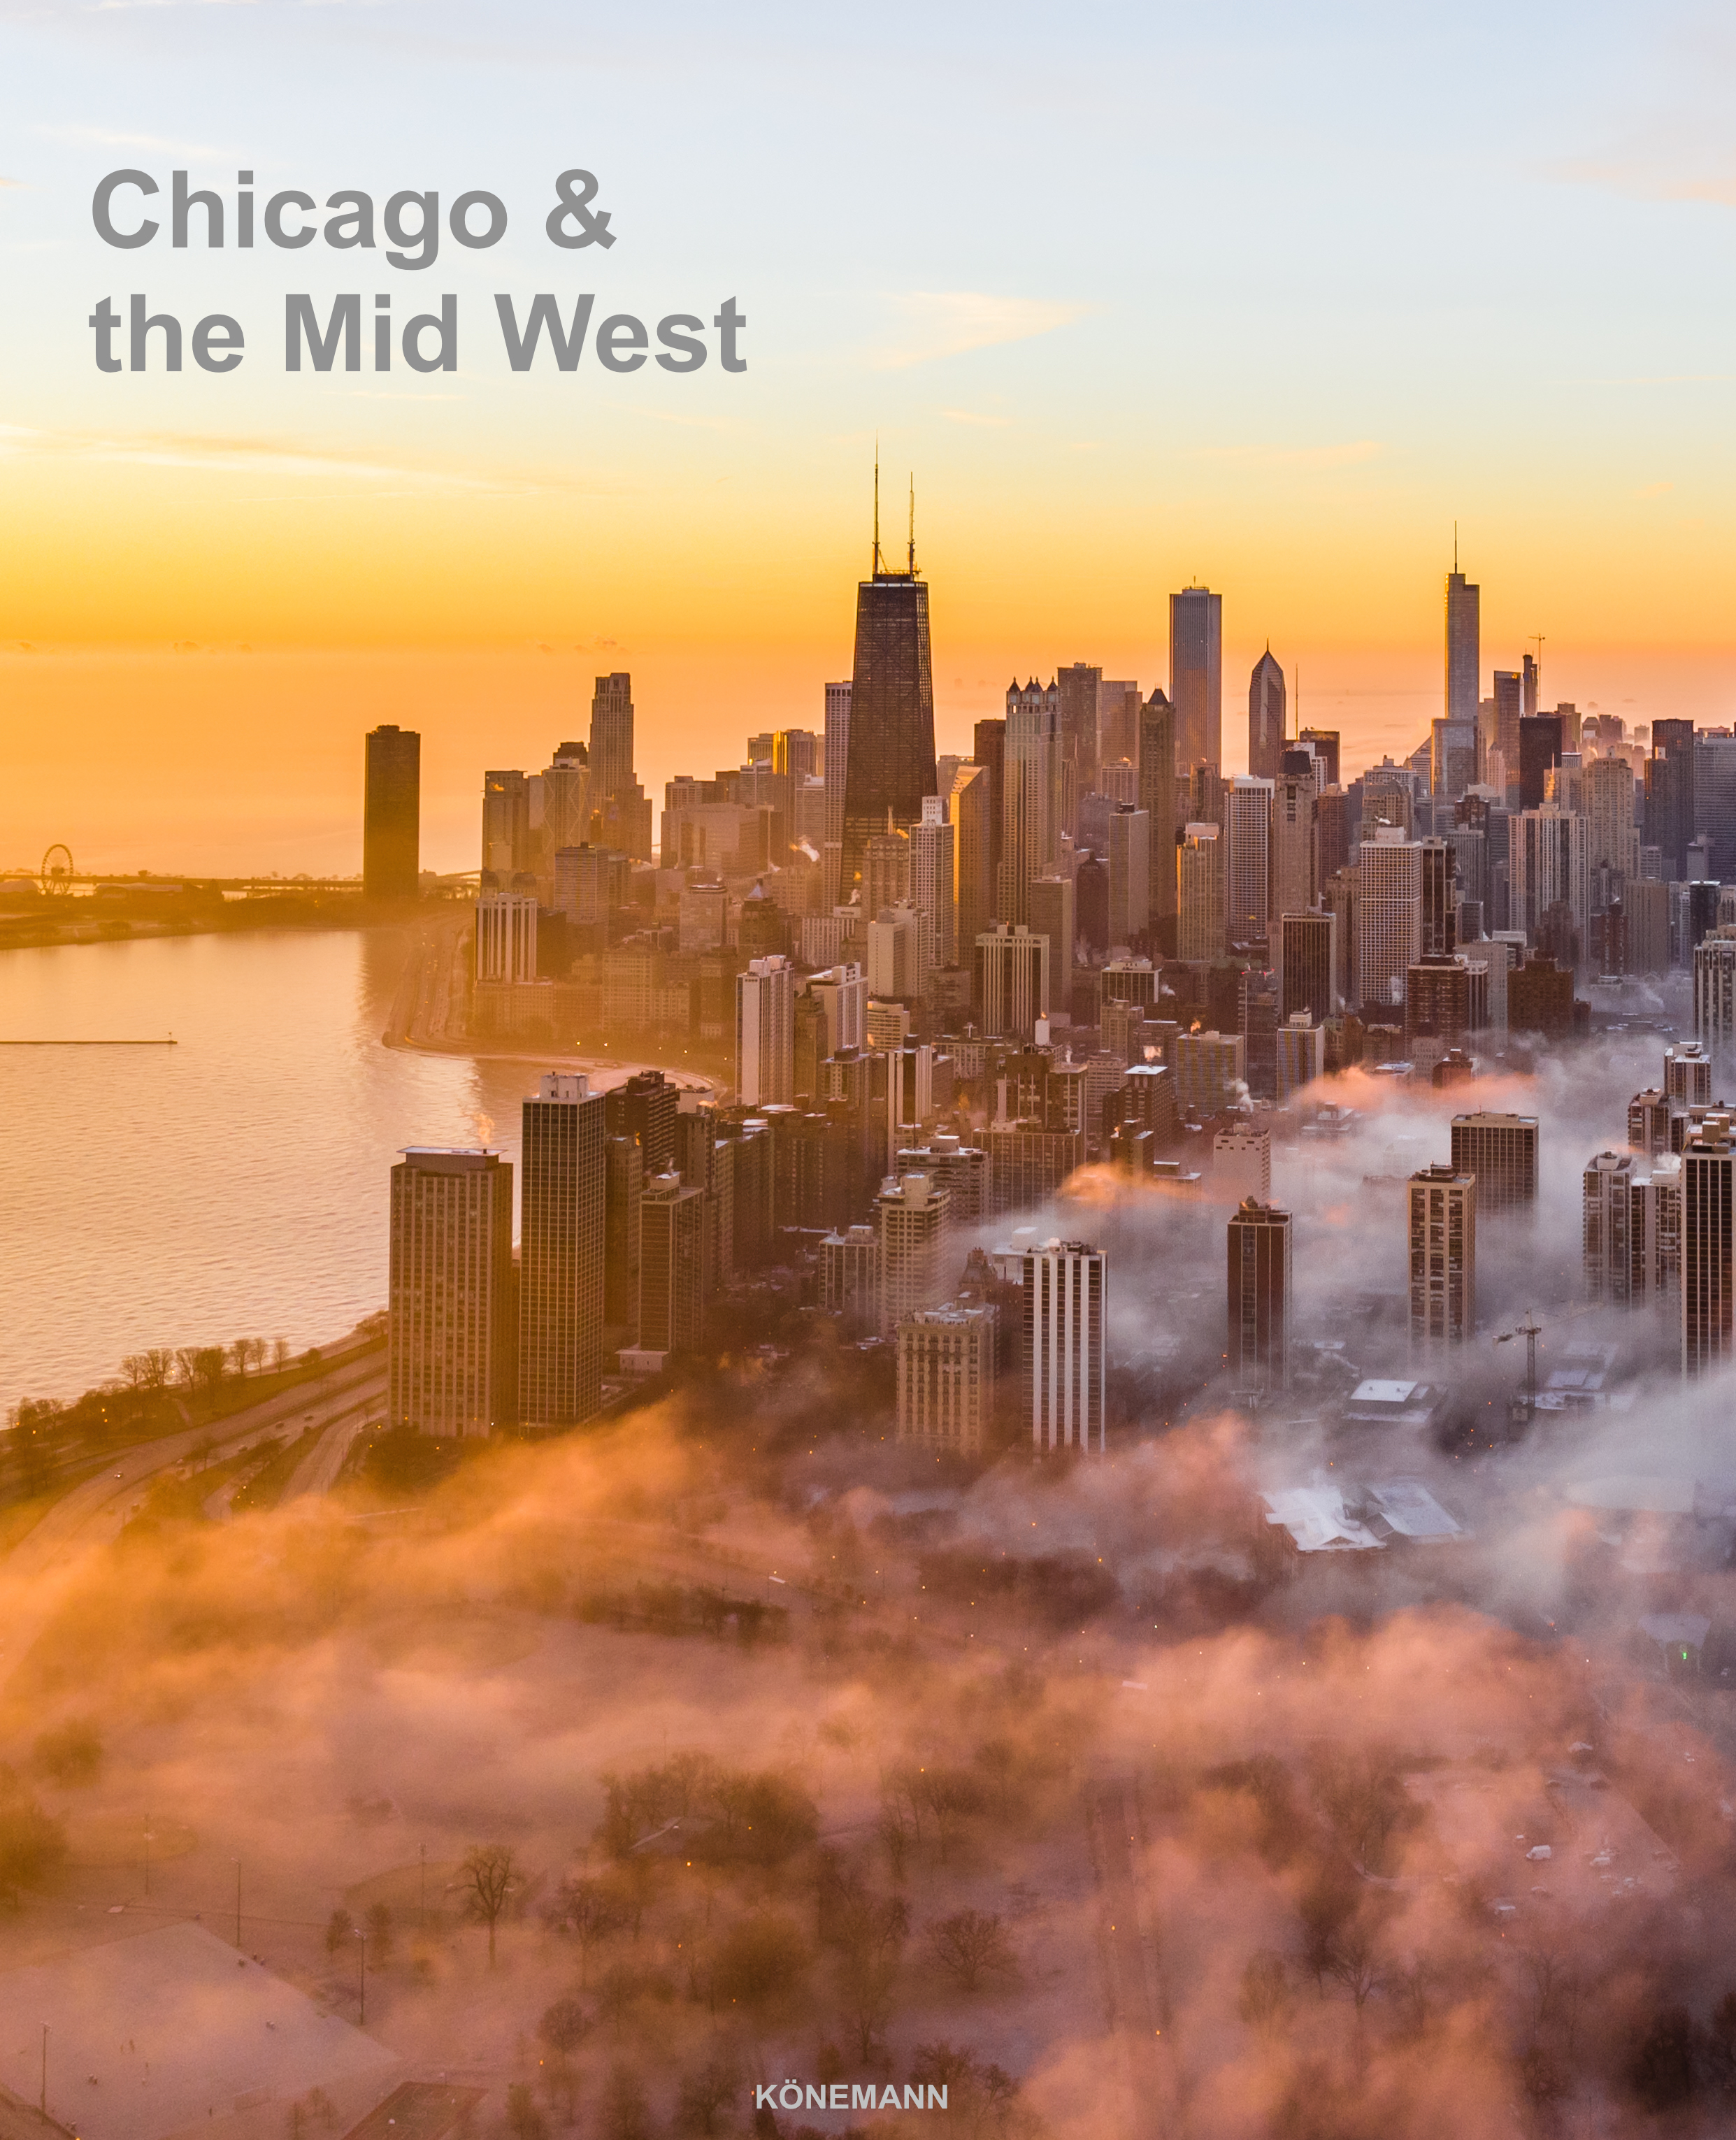 Chicago & The Mid West